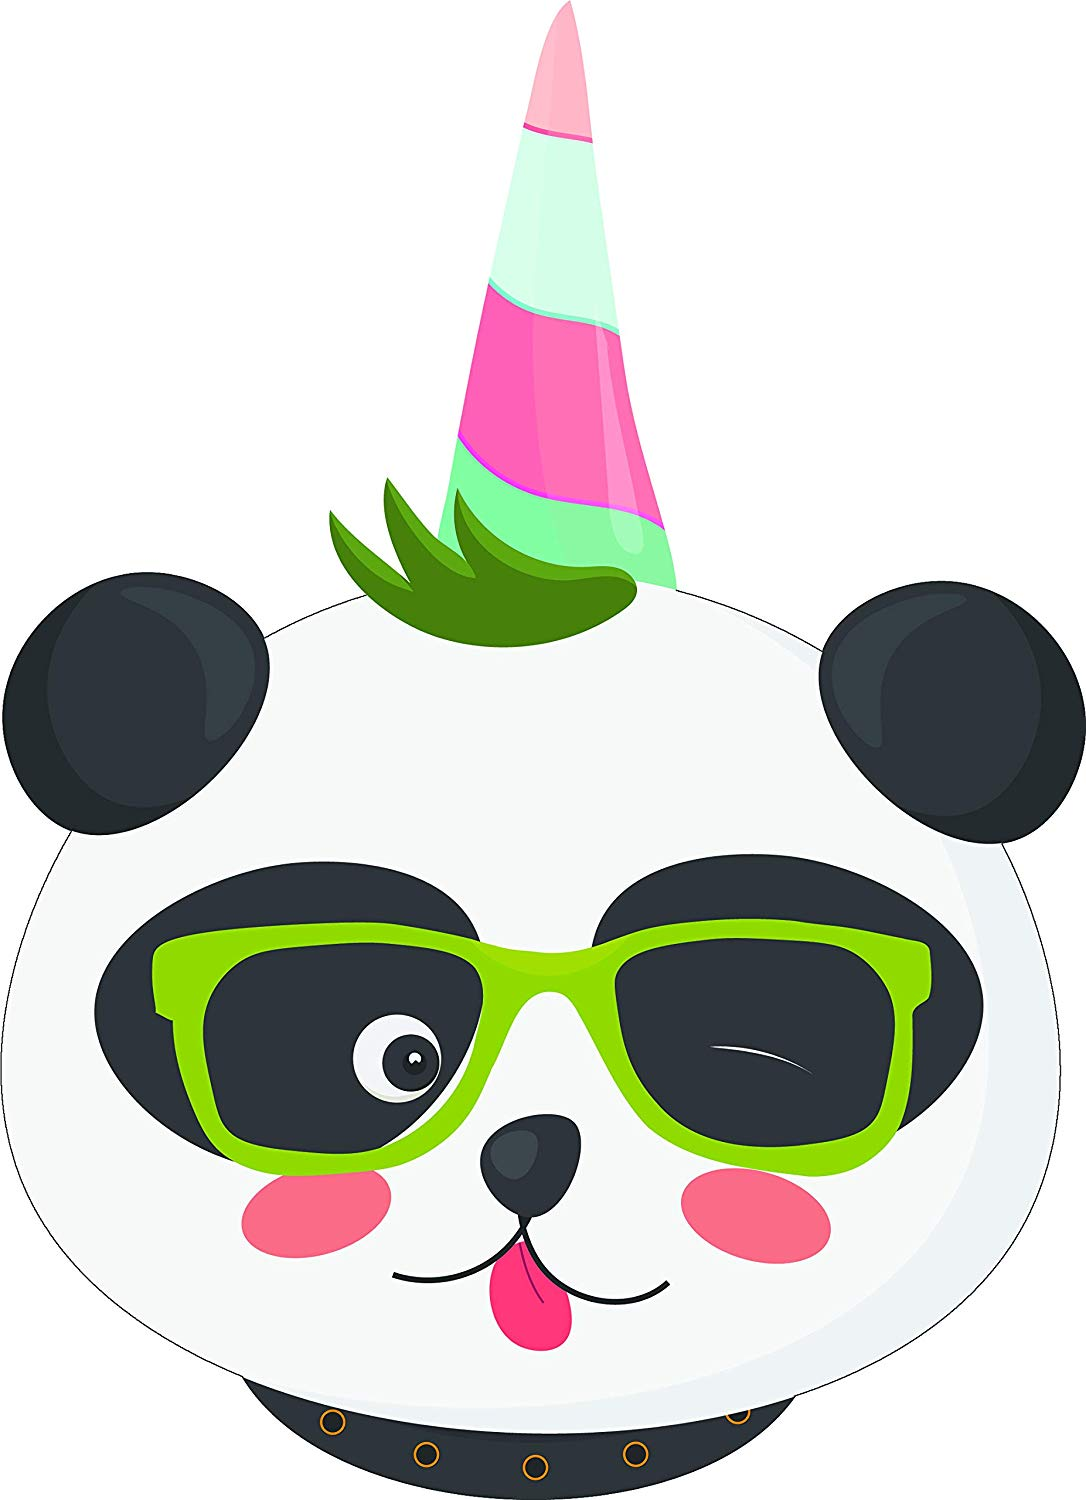 Animal with silly goggles clipart image library library Amazon.com: Cute Winking Panda Happy Birthday Party Silly Kawaii Fun ... image library library